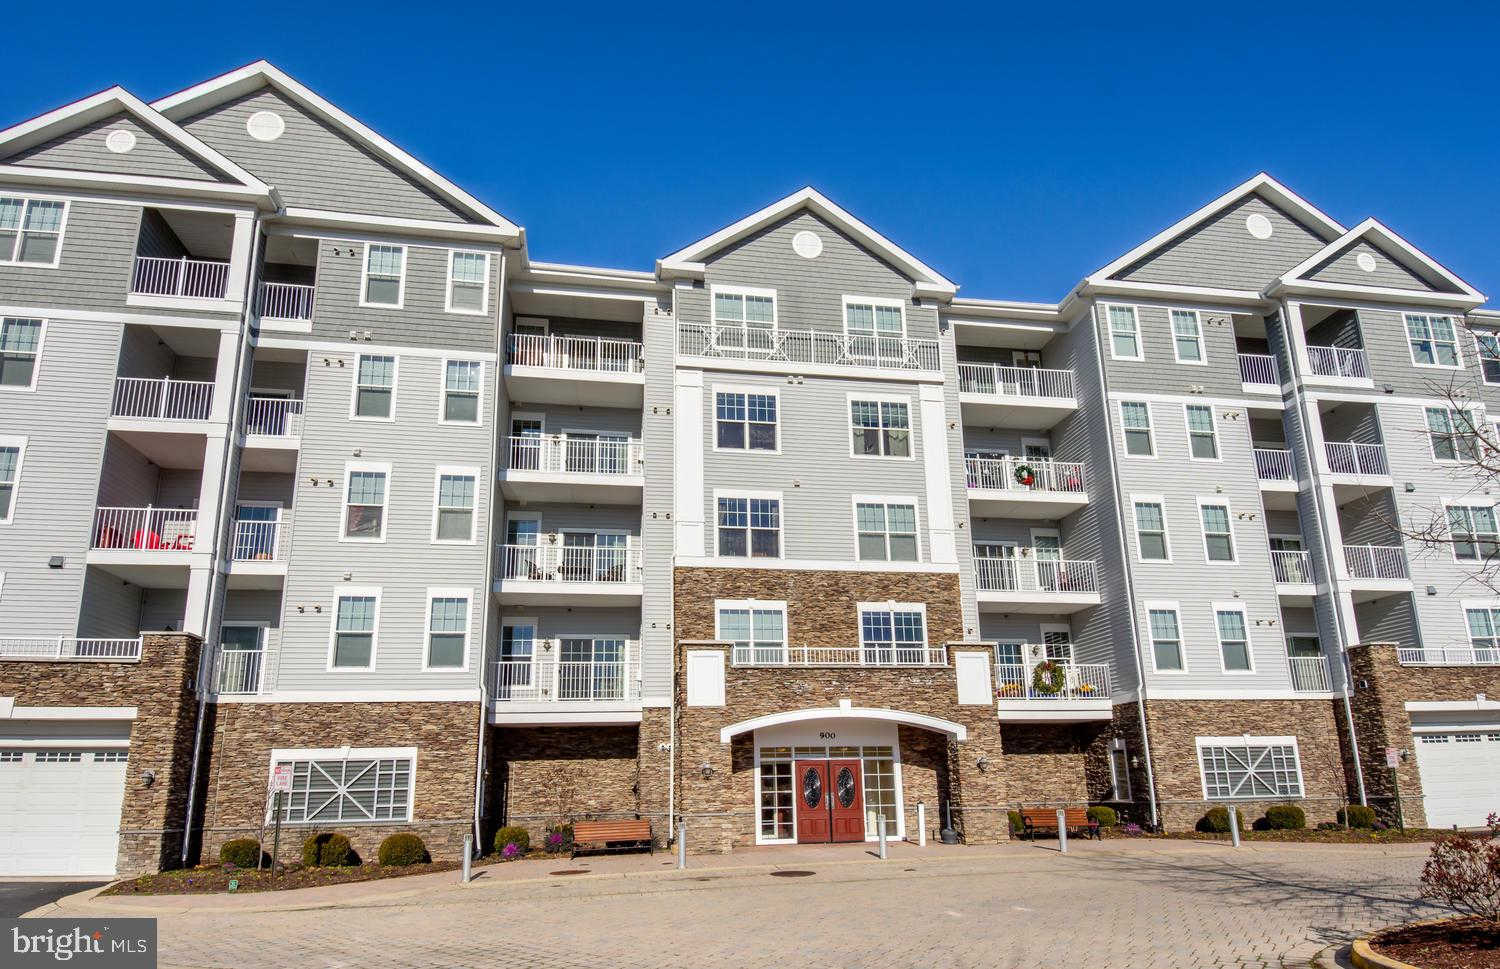 900 Marshy Cove #209, Cambridge, MD 21613 is now new to the market!